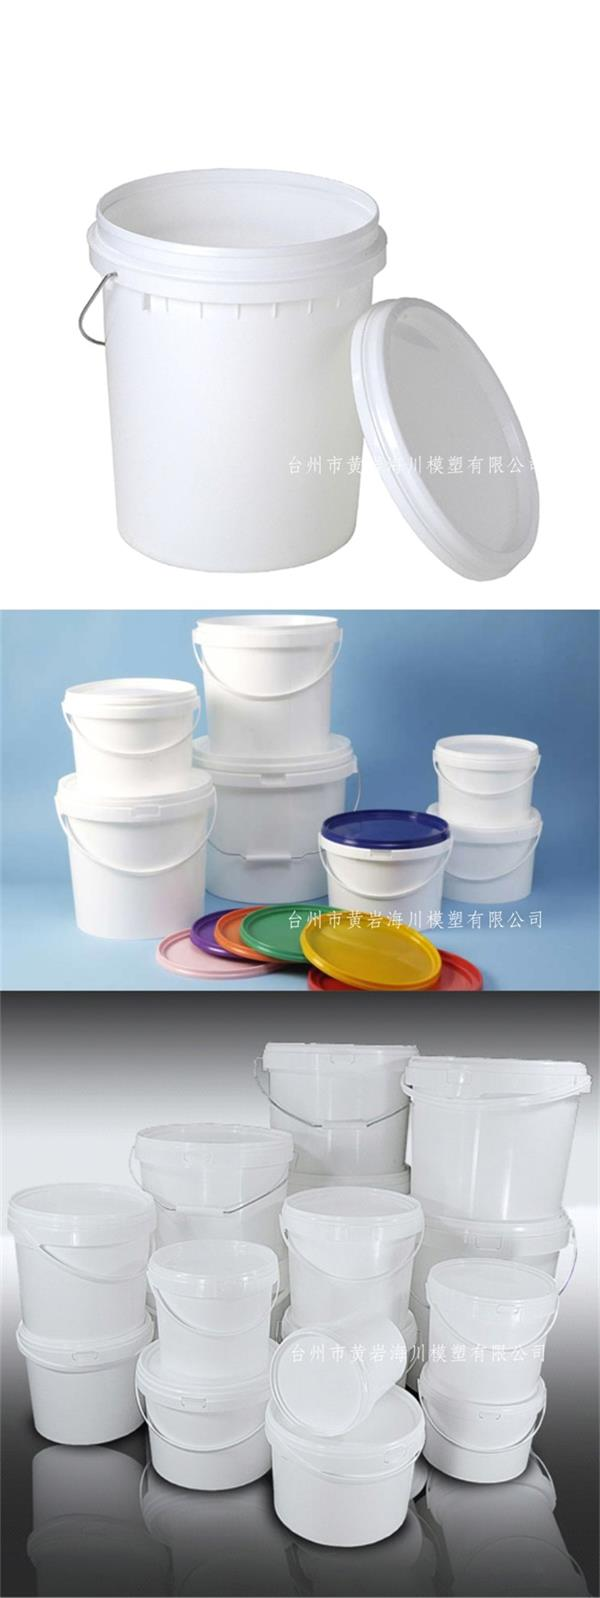 Chemical bucket mould-Detergent bucket and pail mould manufacturer and price